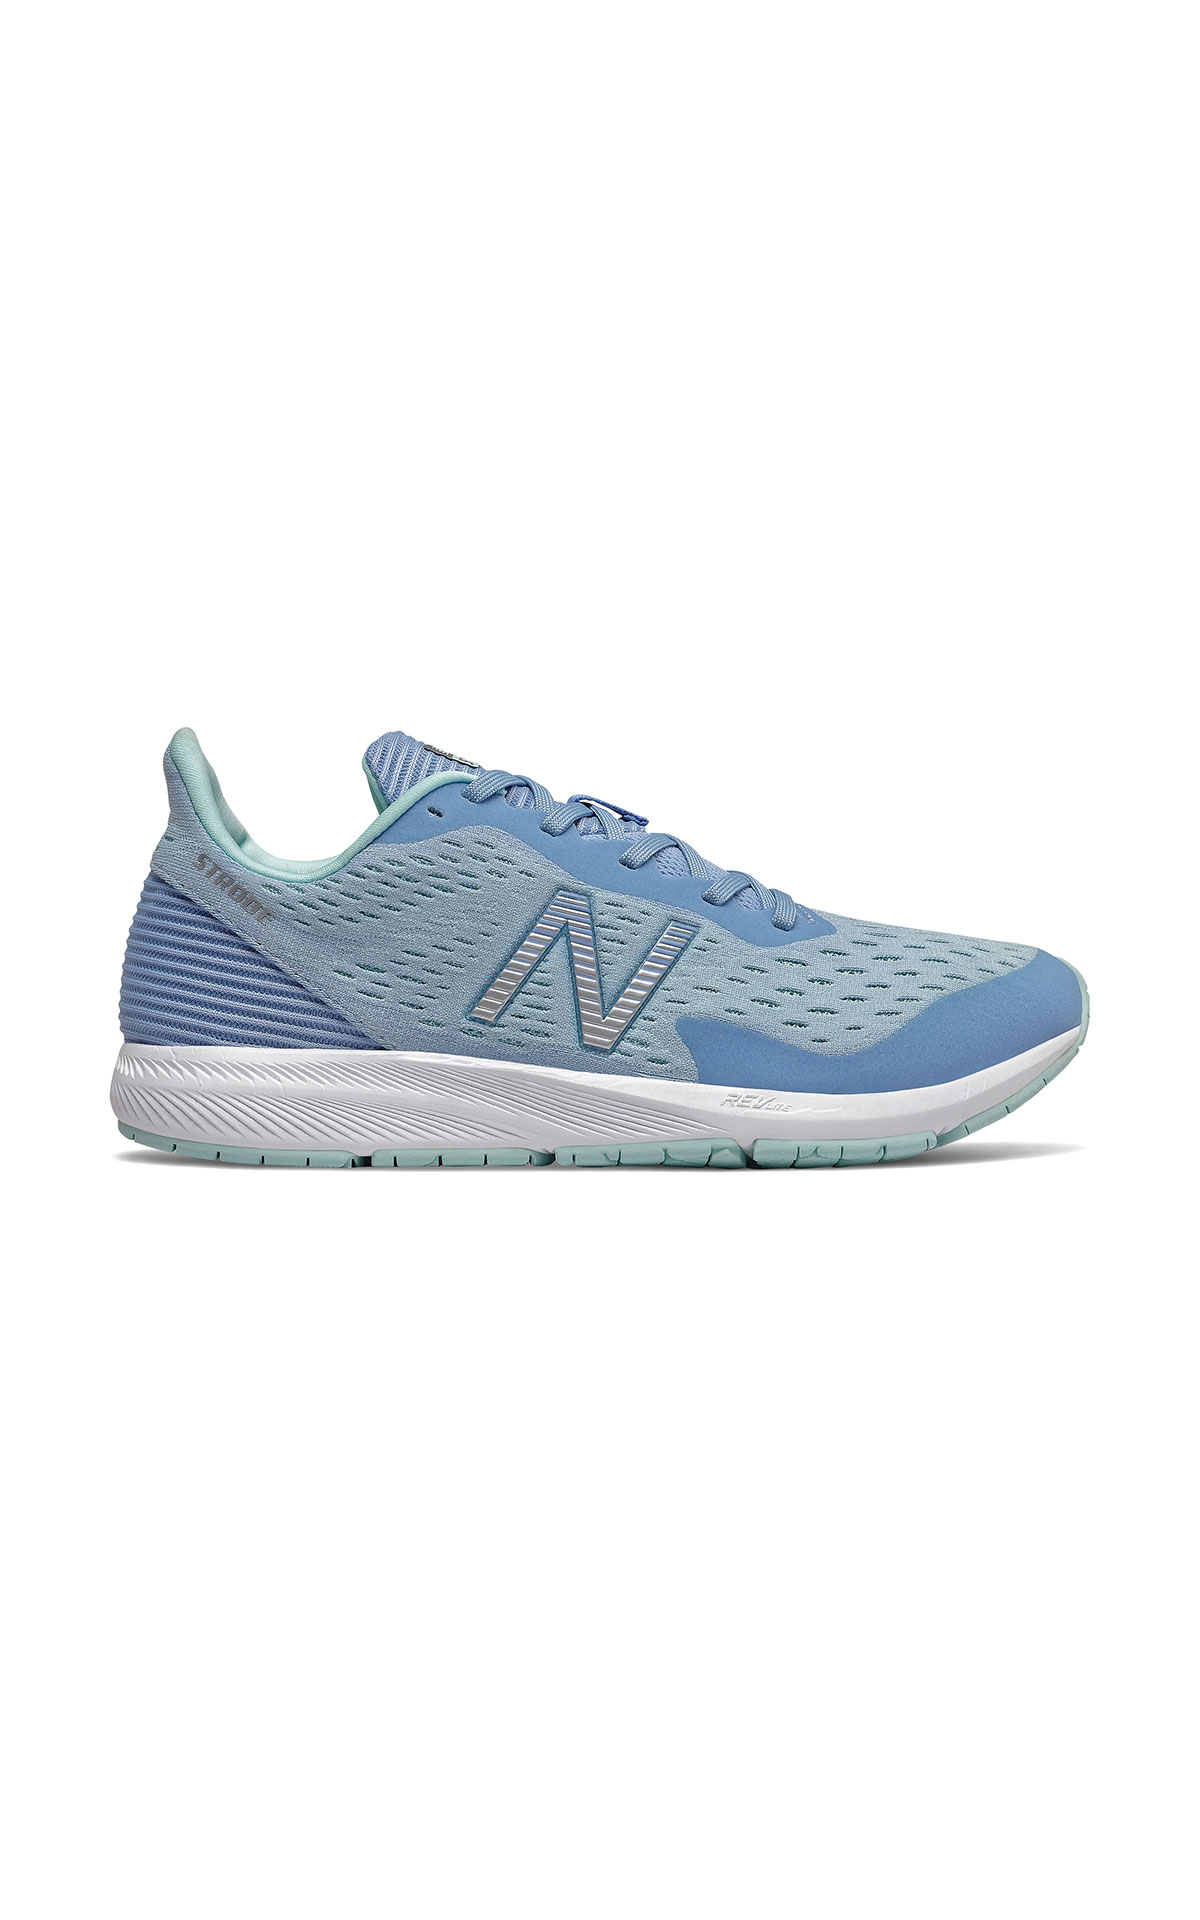 Light blue Strobe sneakers for women New Balance